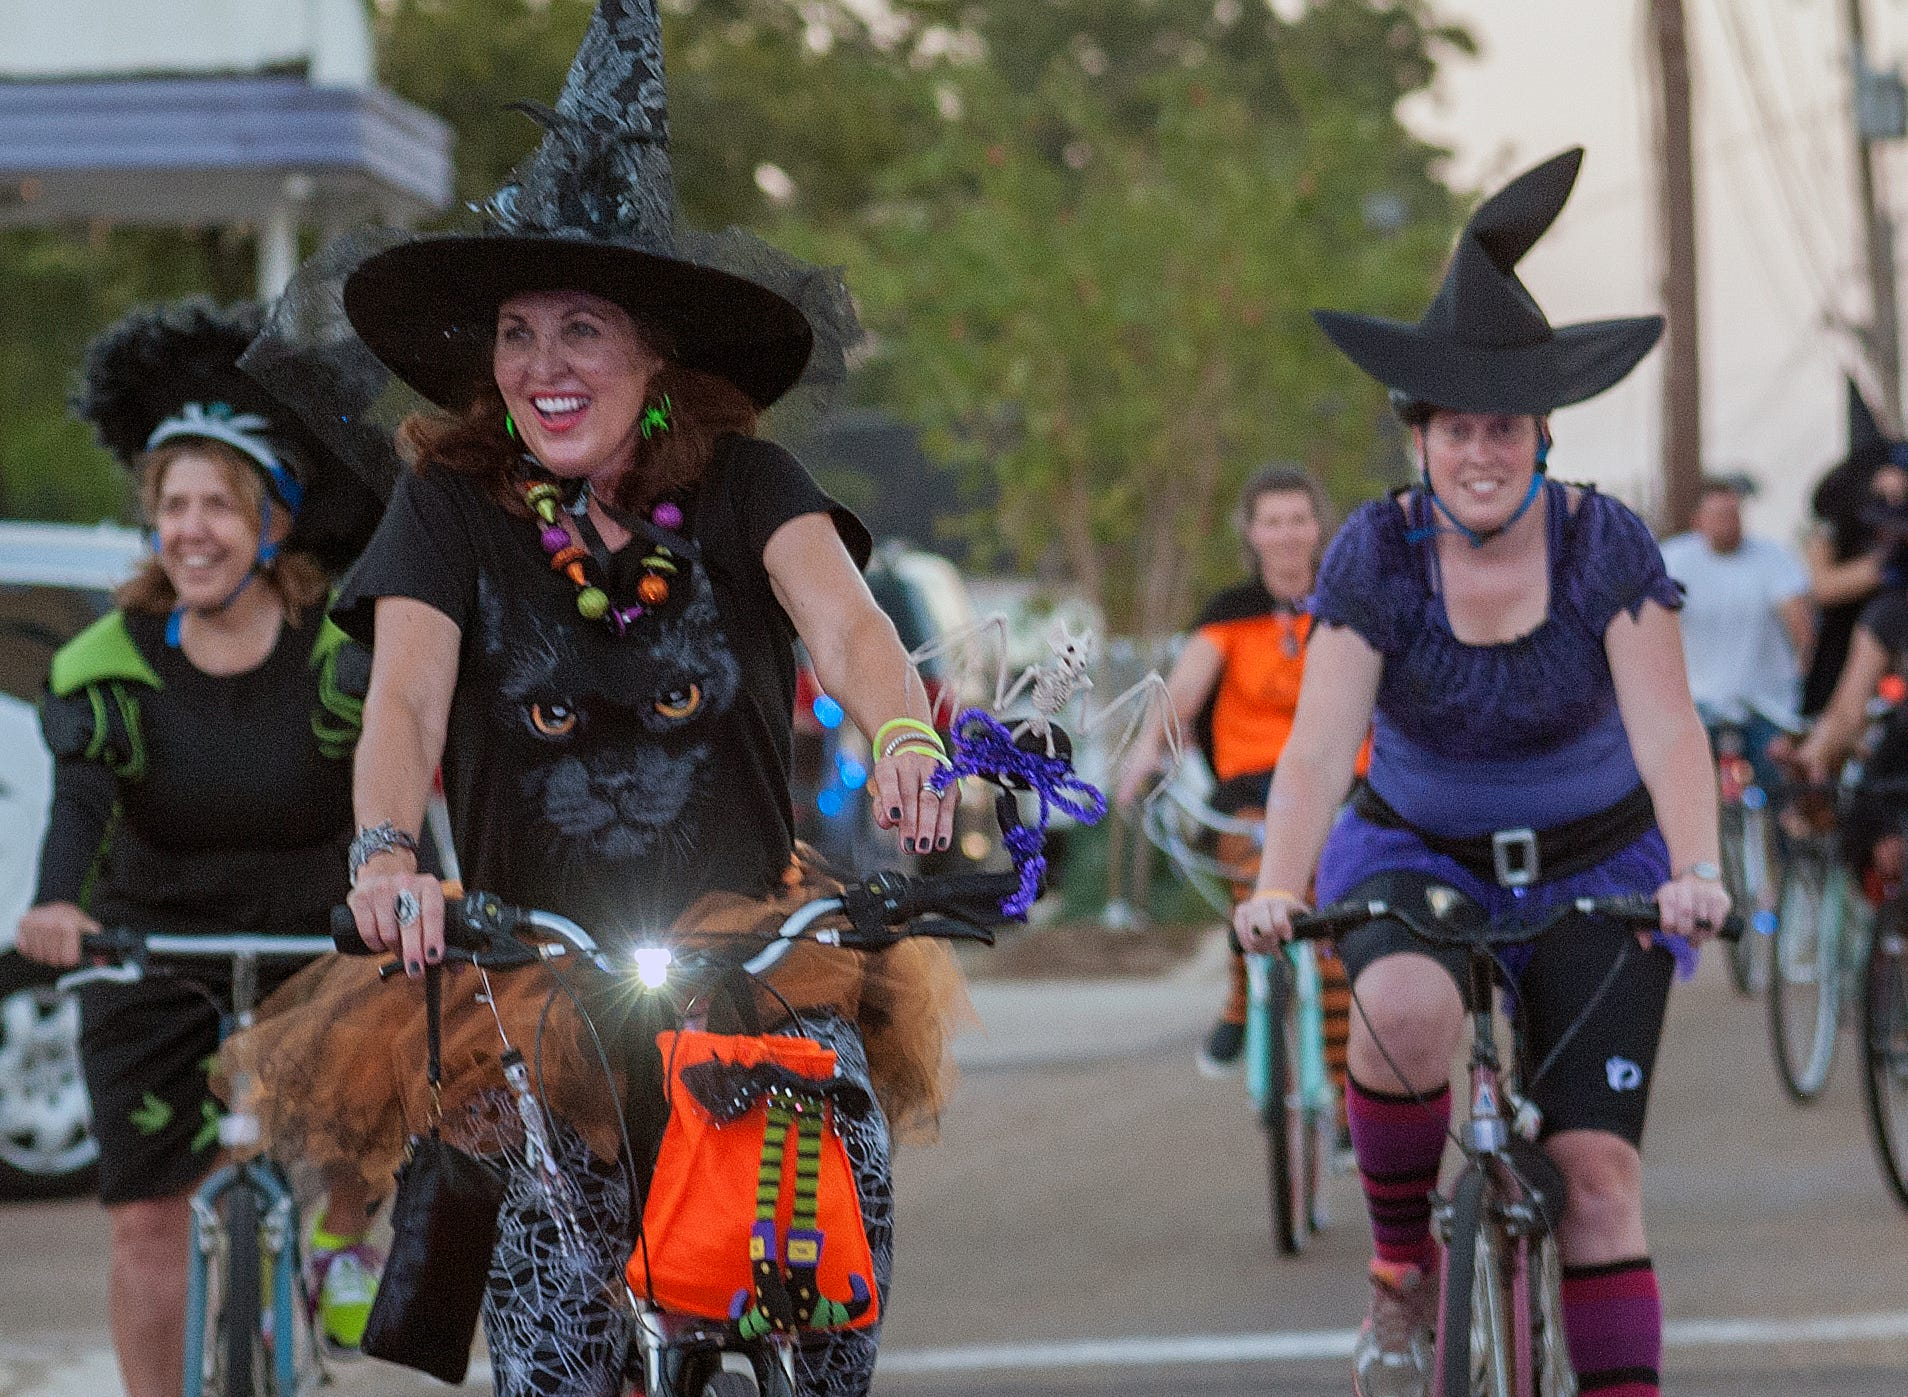 Witches fly south on bicycles along State Street in the Fondren District of Jackson resently during the Witches Ride as part of Fondren After Five events in support of the nonprofit Extra Table.